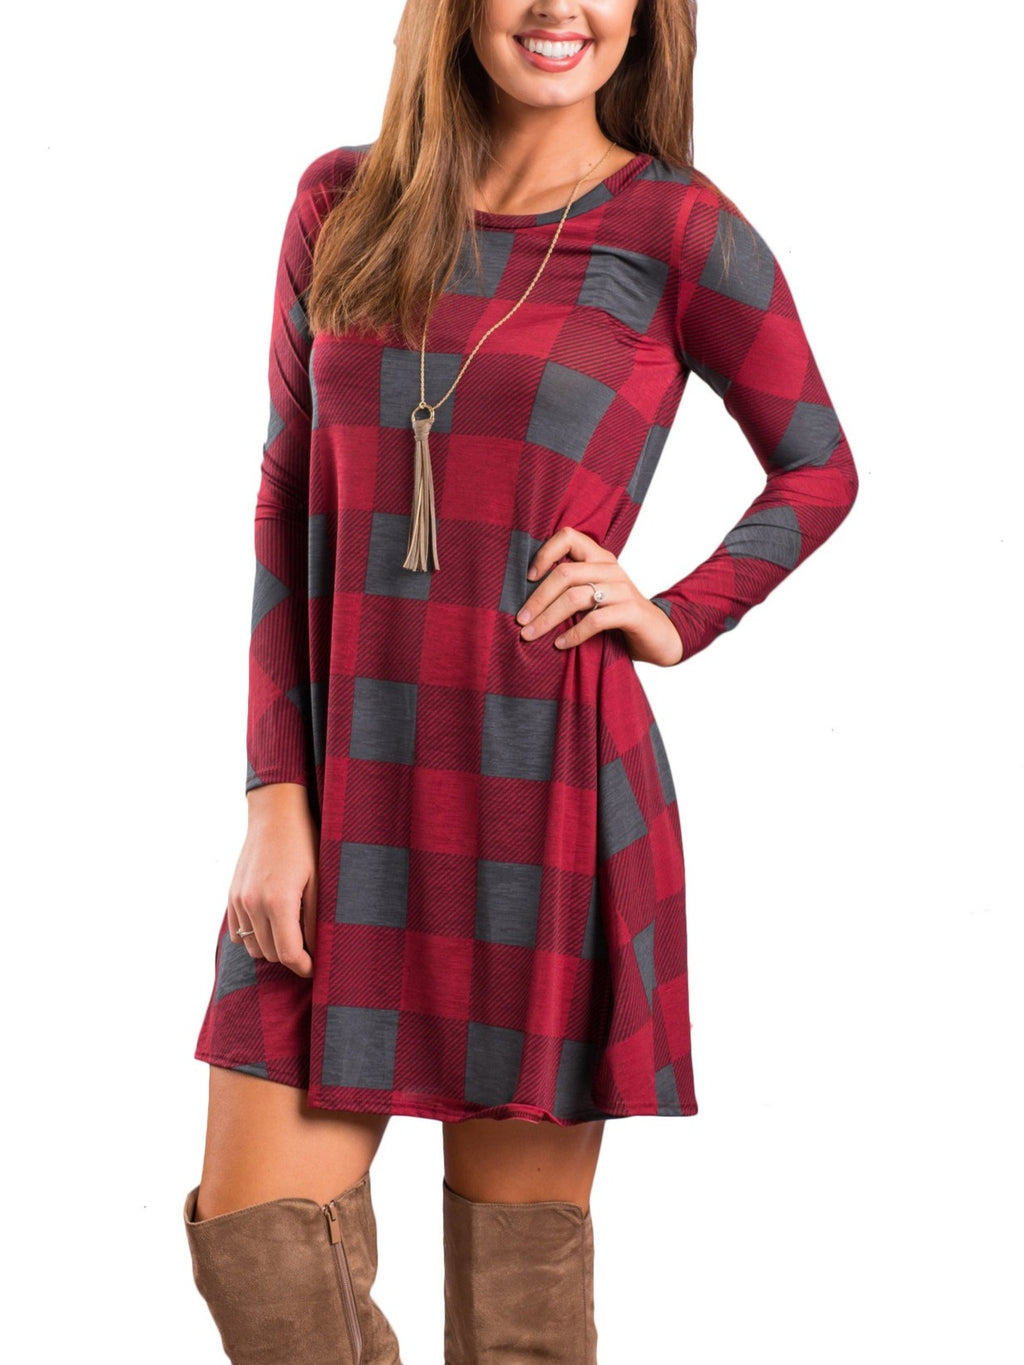 Stylish Plaid Printed Long Sleeve Crew Neck Tunics Dresses With Pockets